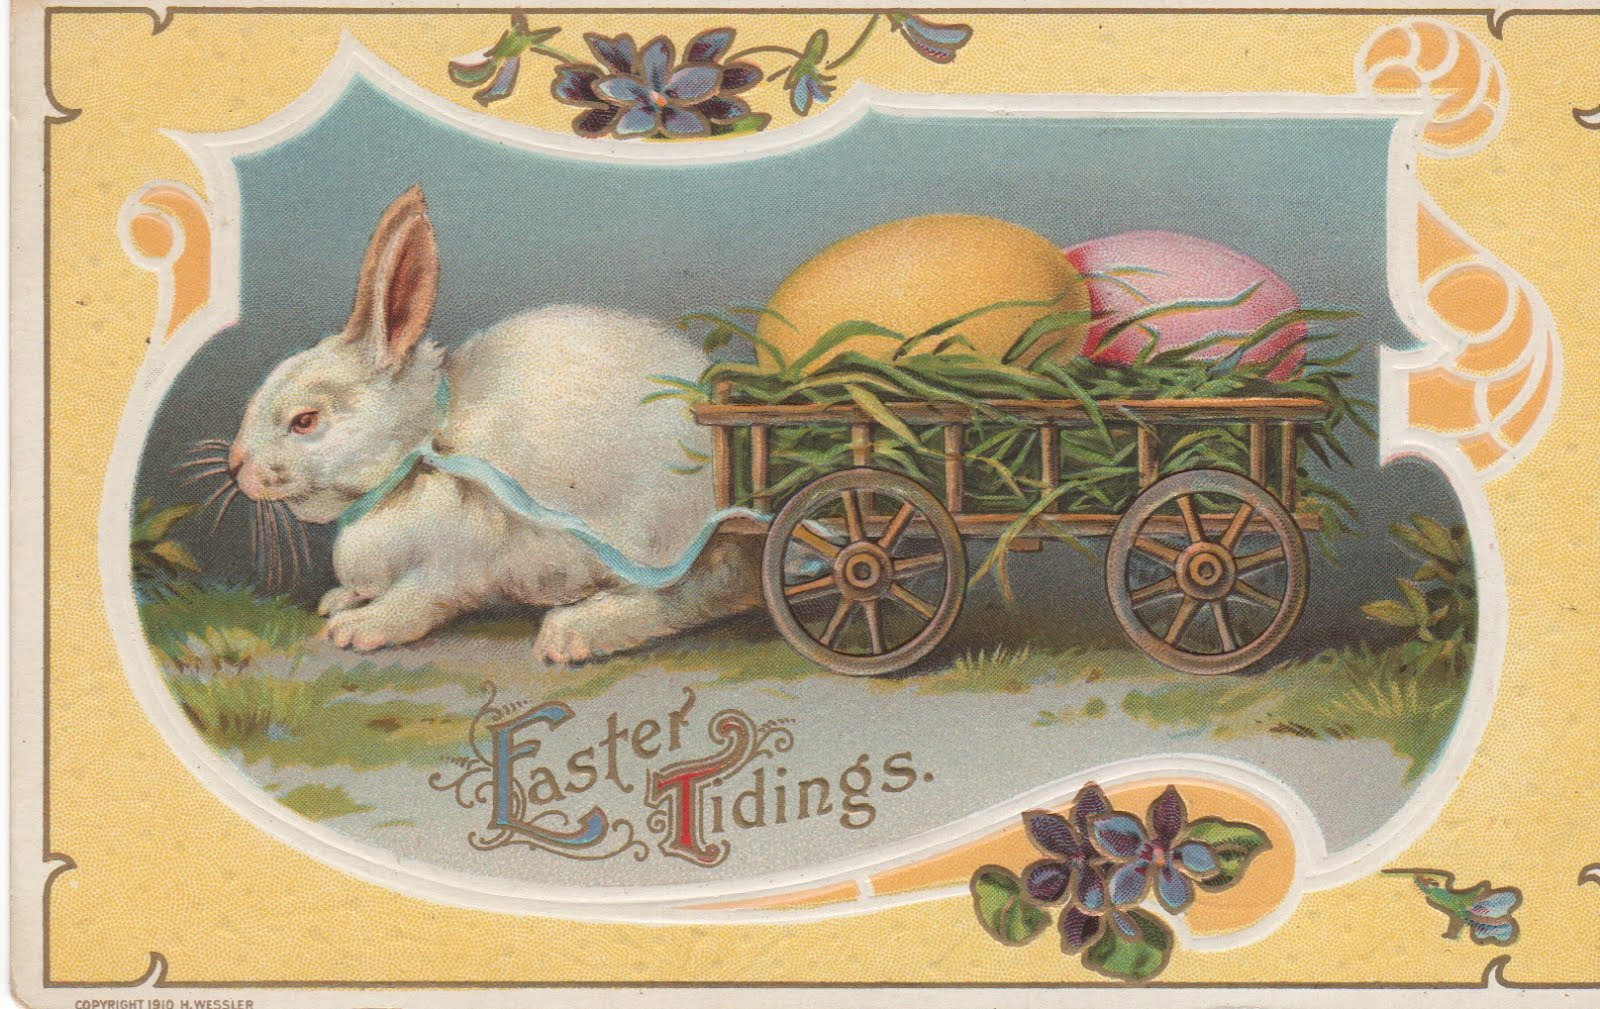 bunnies wallpaper vintage post cards - photo #12